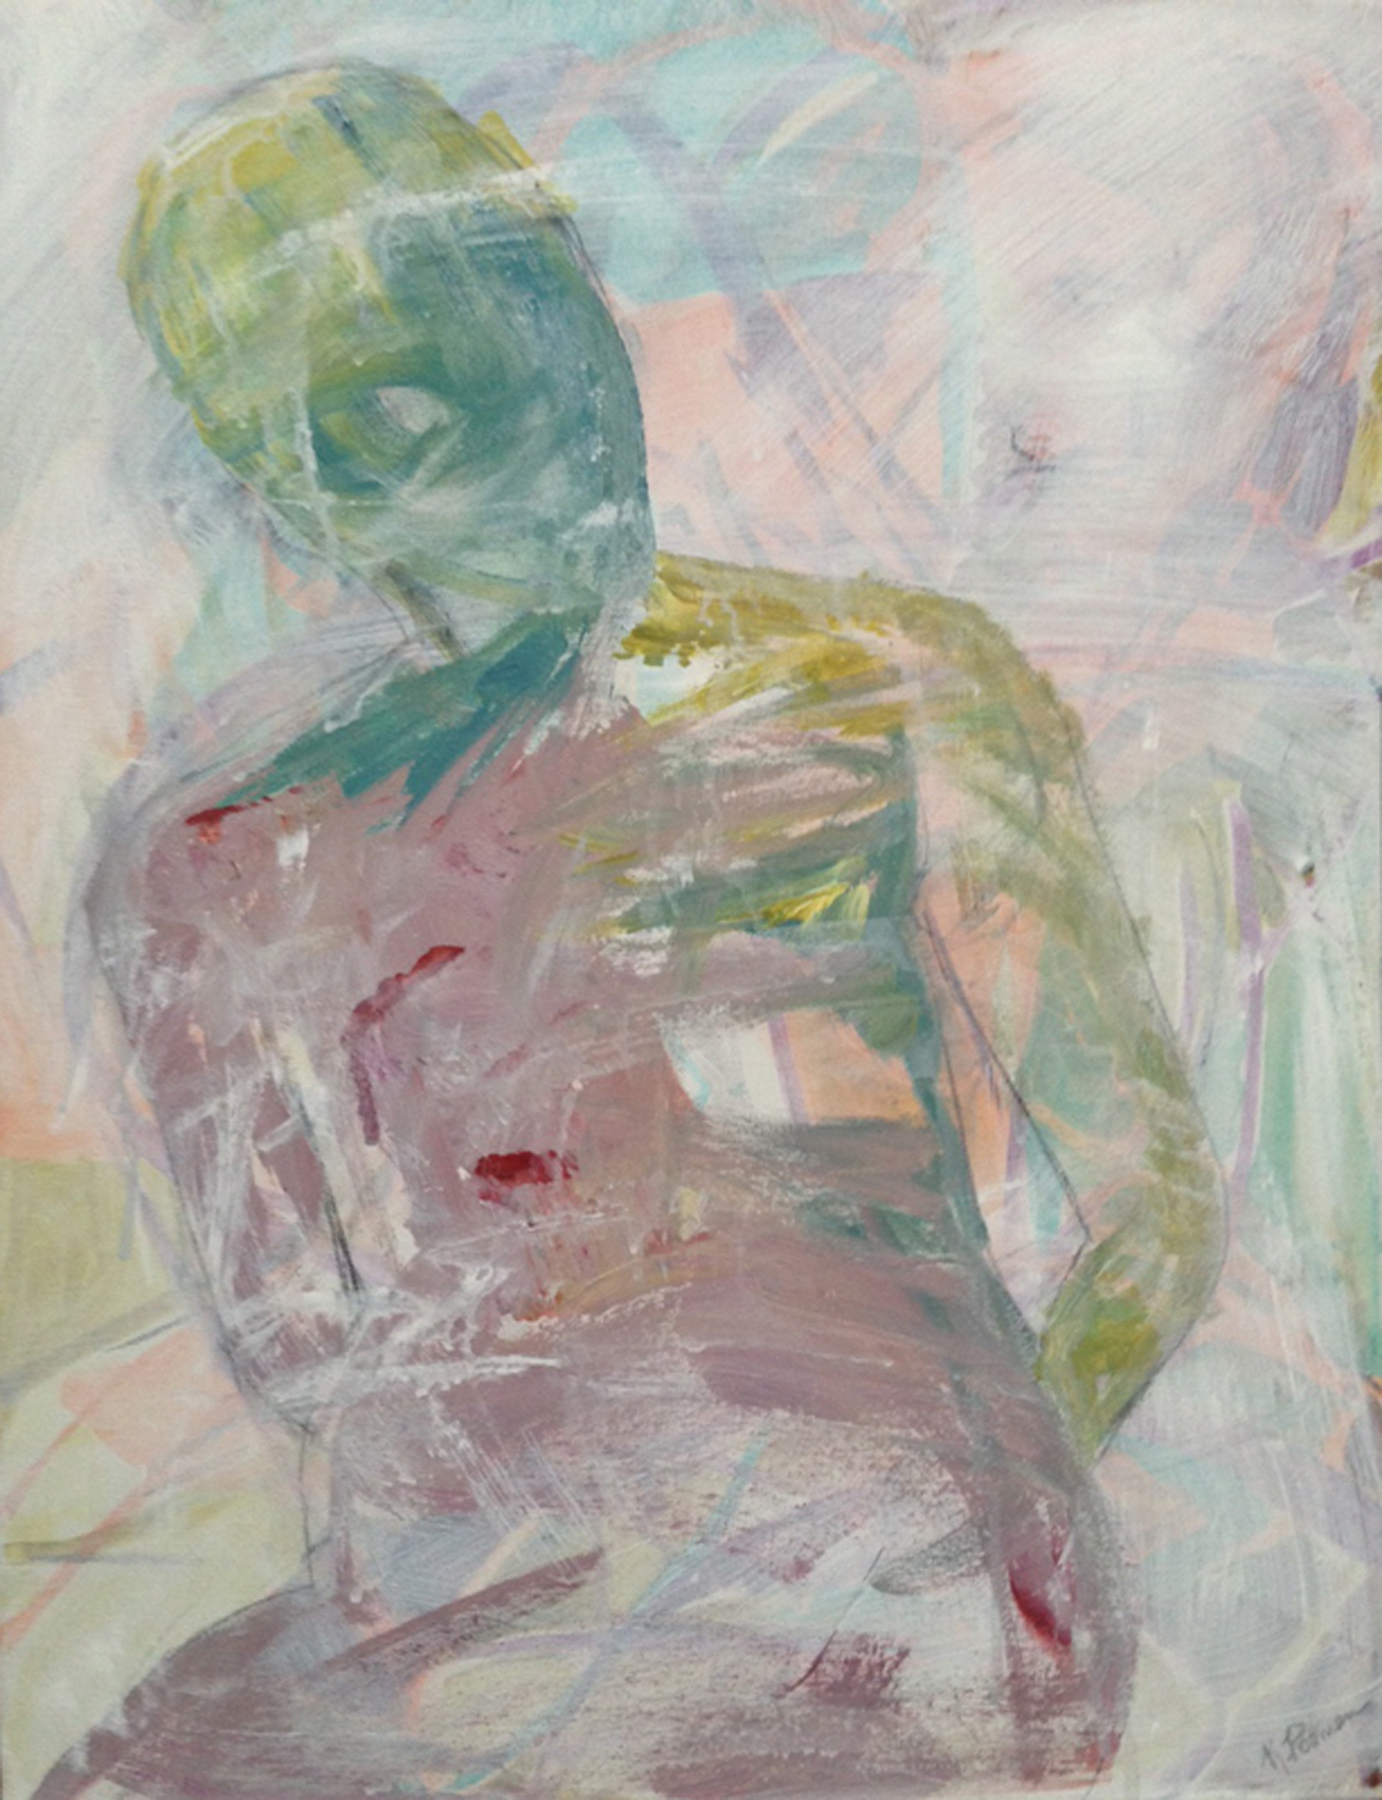 Karen Rothman,  Who, Where, Why, When, What, How?  Acrylic on canvas, 28x22